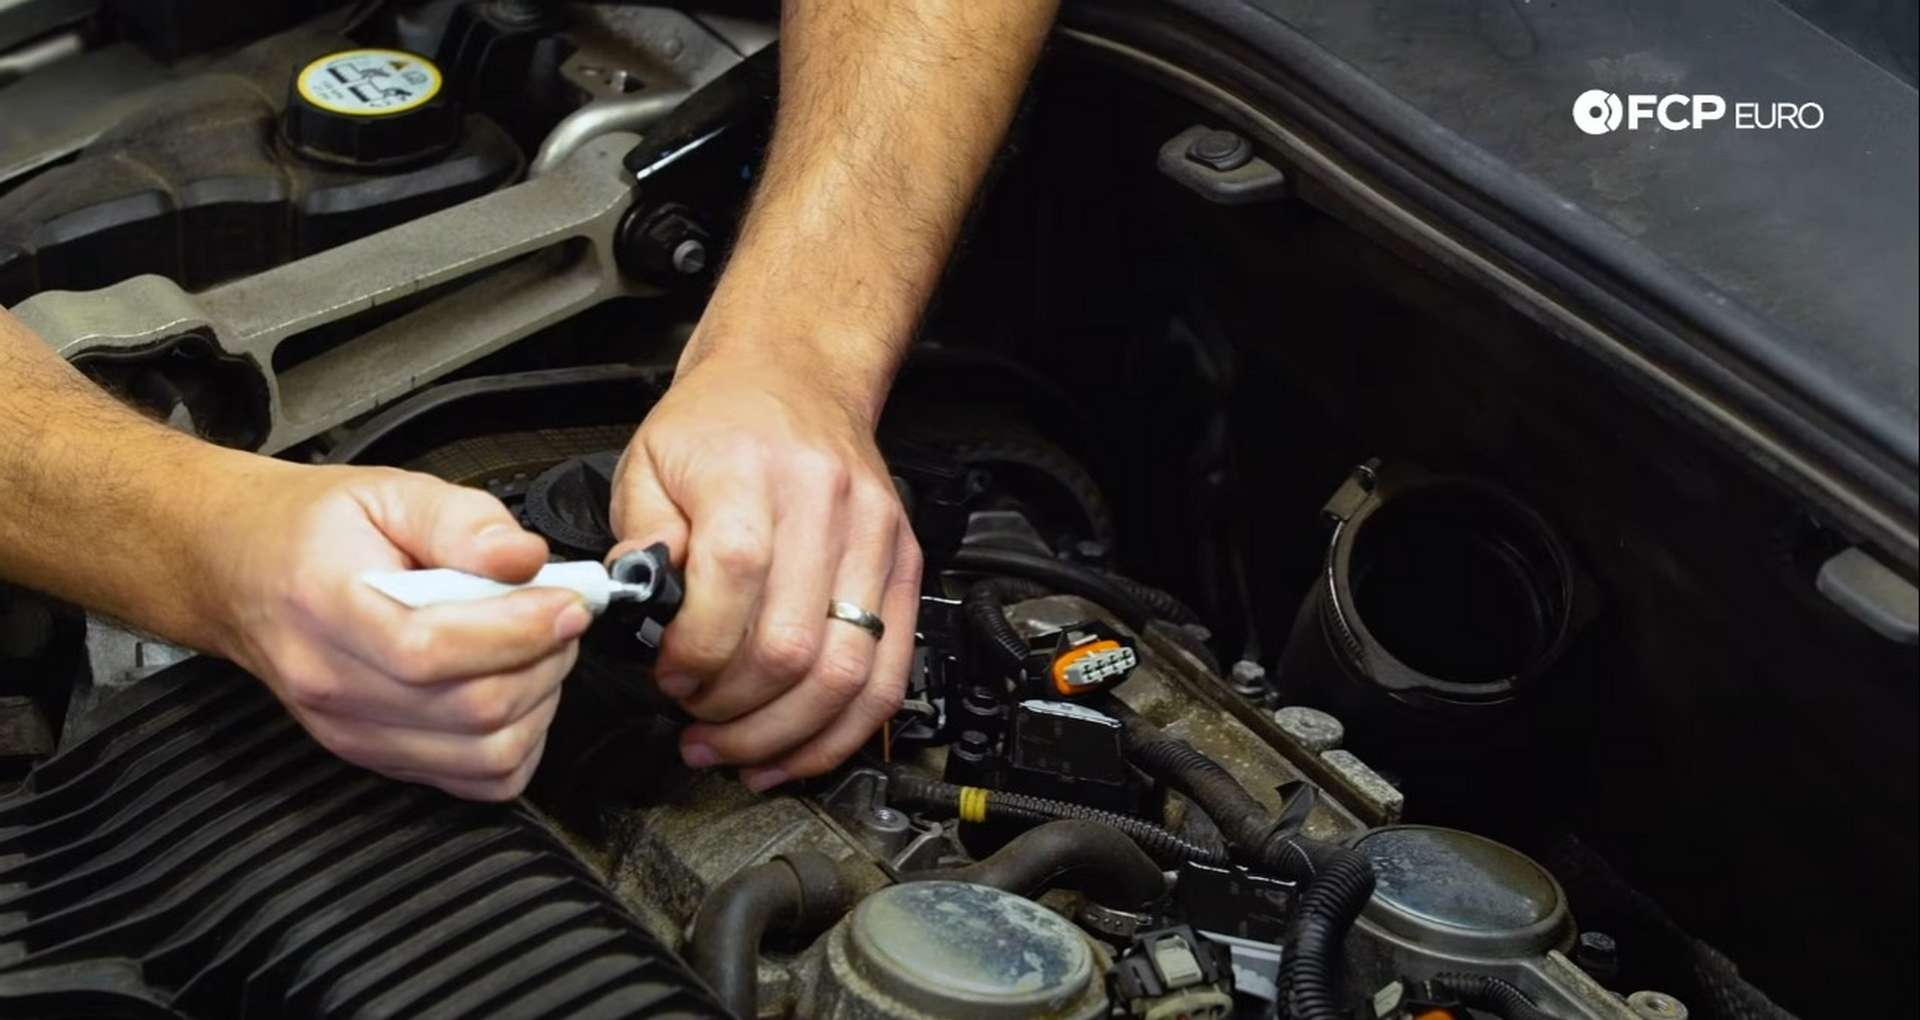 DIY Volvo Spark Plug and Ignition Coil Replacement placing the dielectric grease onto the ignition coil